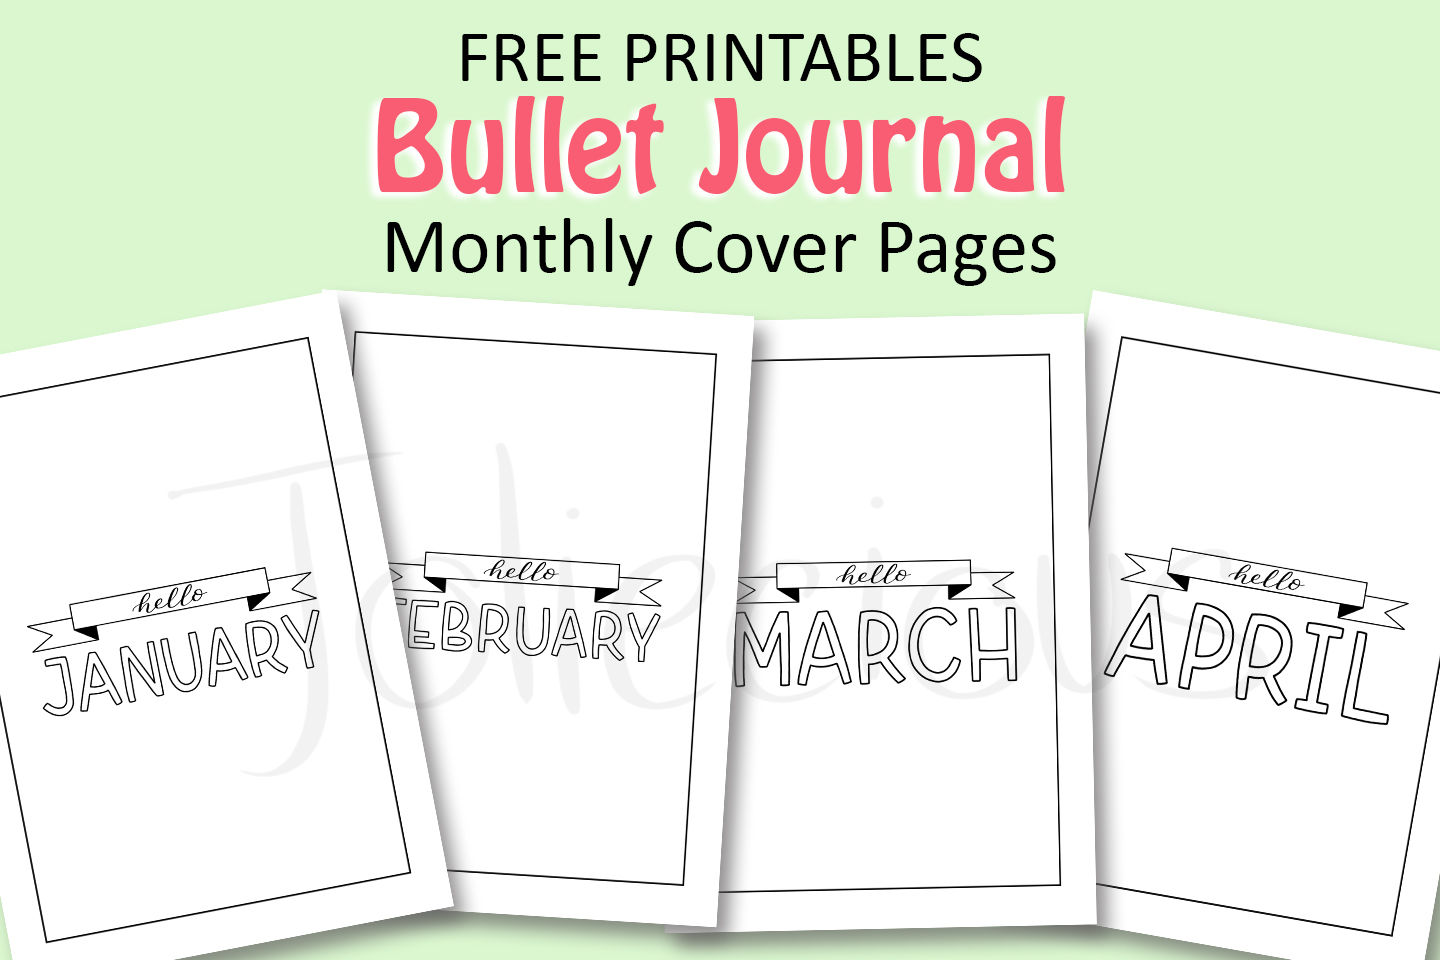 Free Printables: 12 Months of Bullet Journal Cover Page (Part 2)